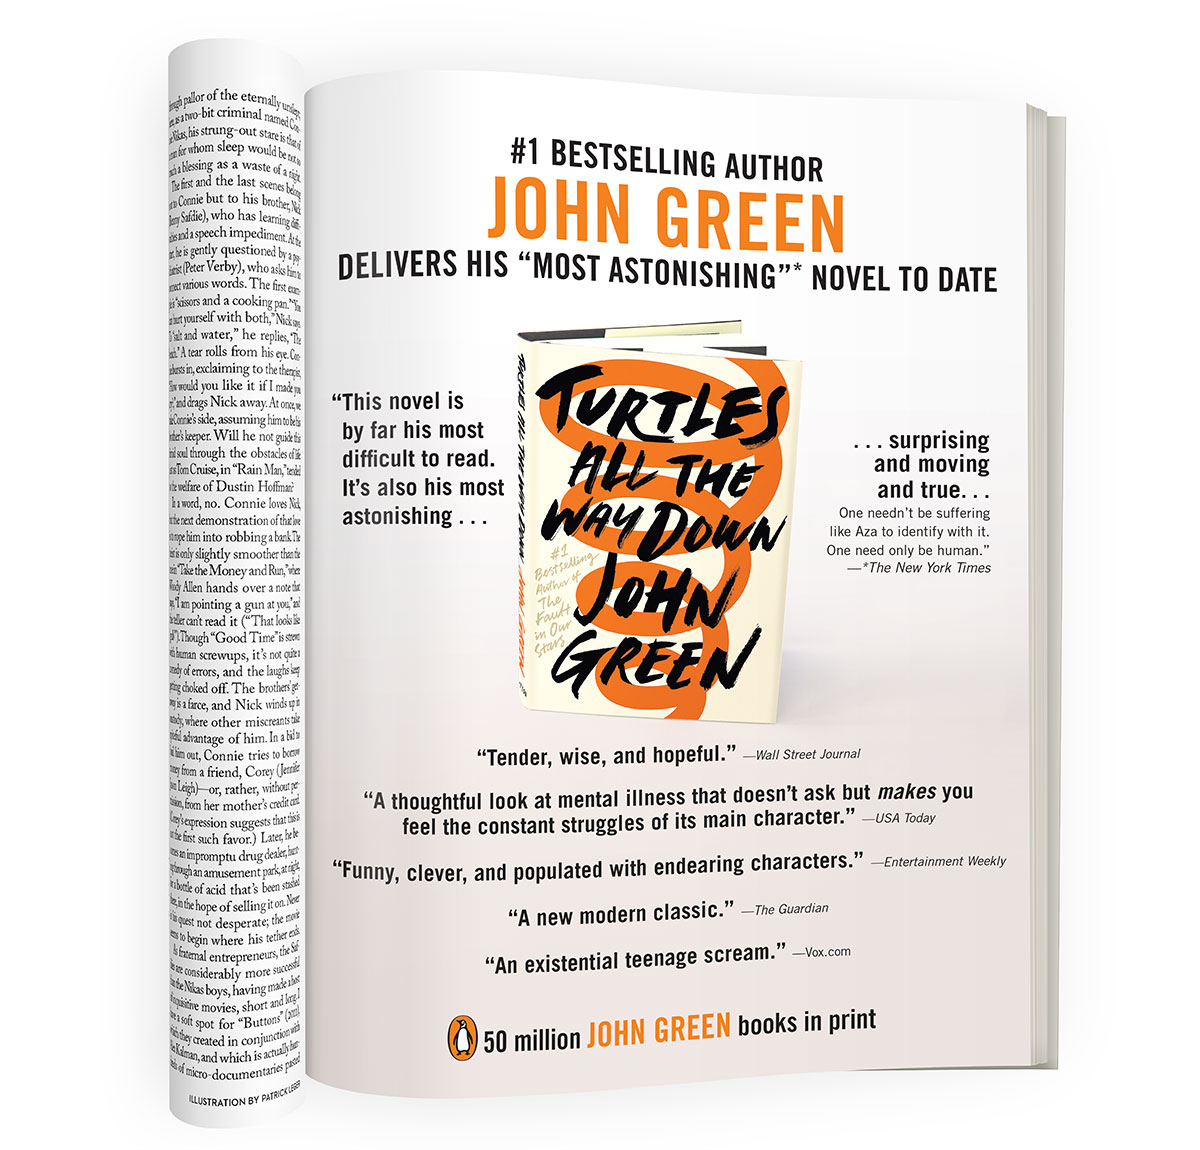 Turtles All the Way Down - John Green - New Yorker magazine